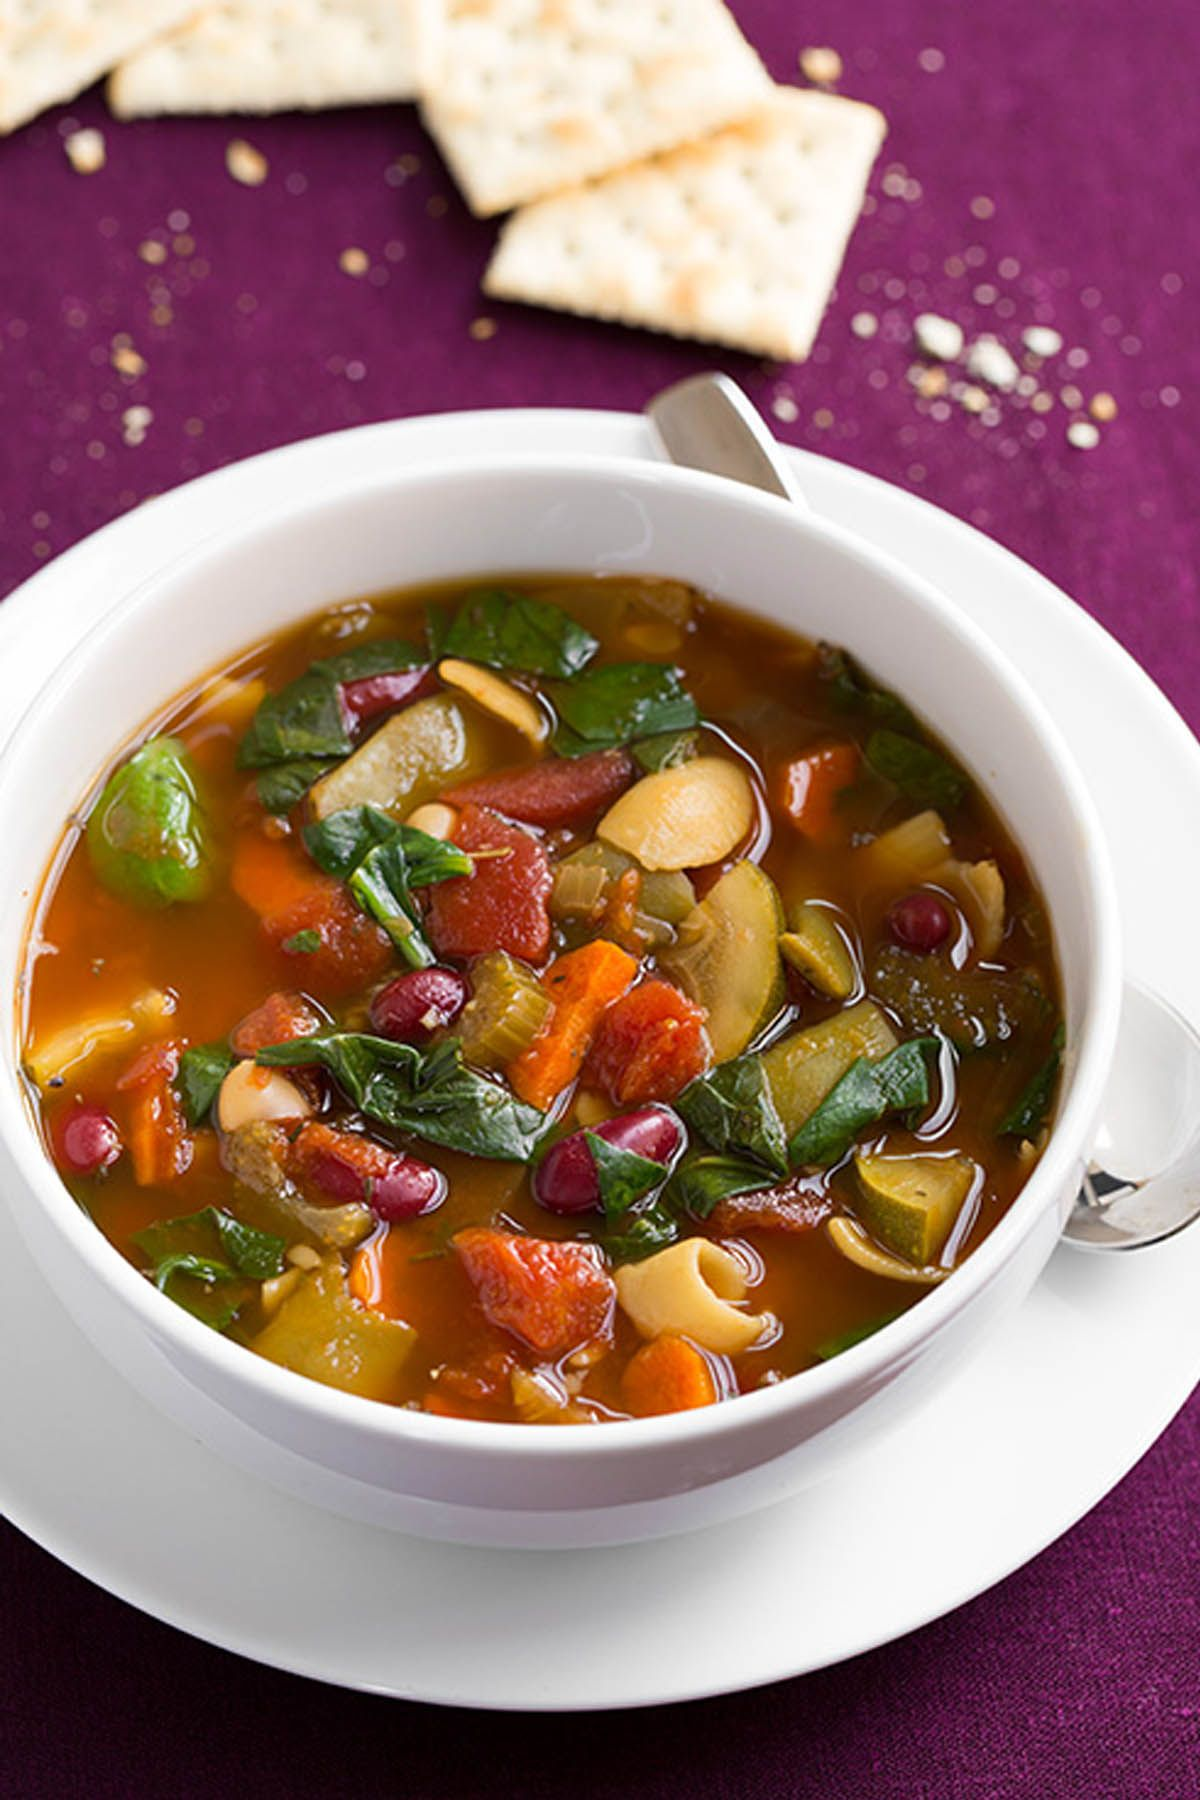 20 Best Minestrone Soup Recipes - How to Make Easy Minestrone Soup